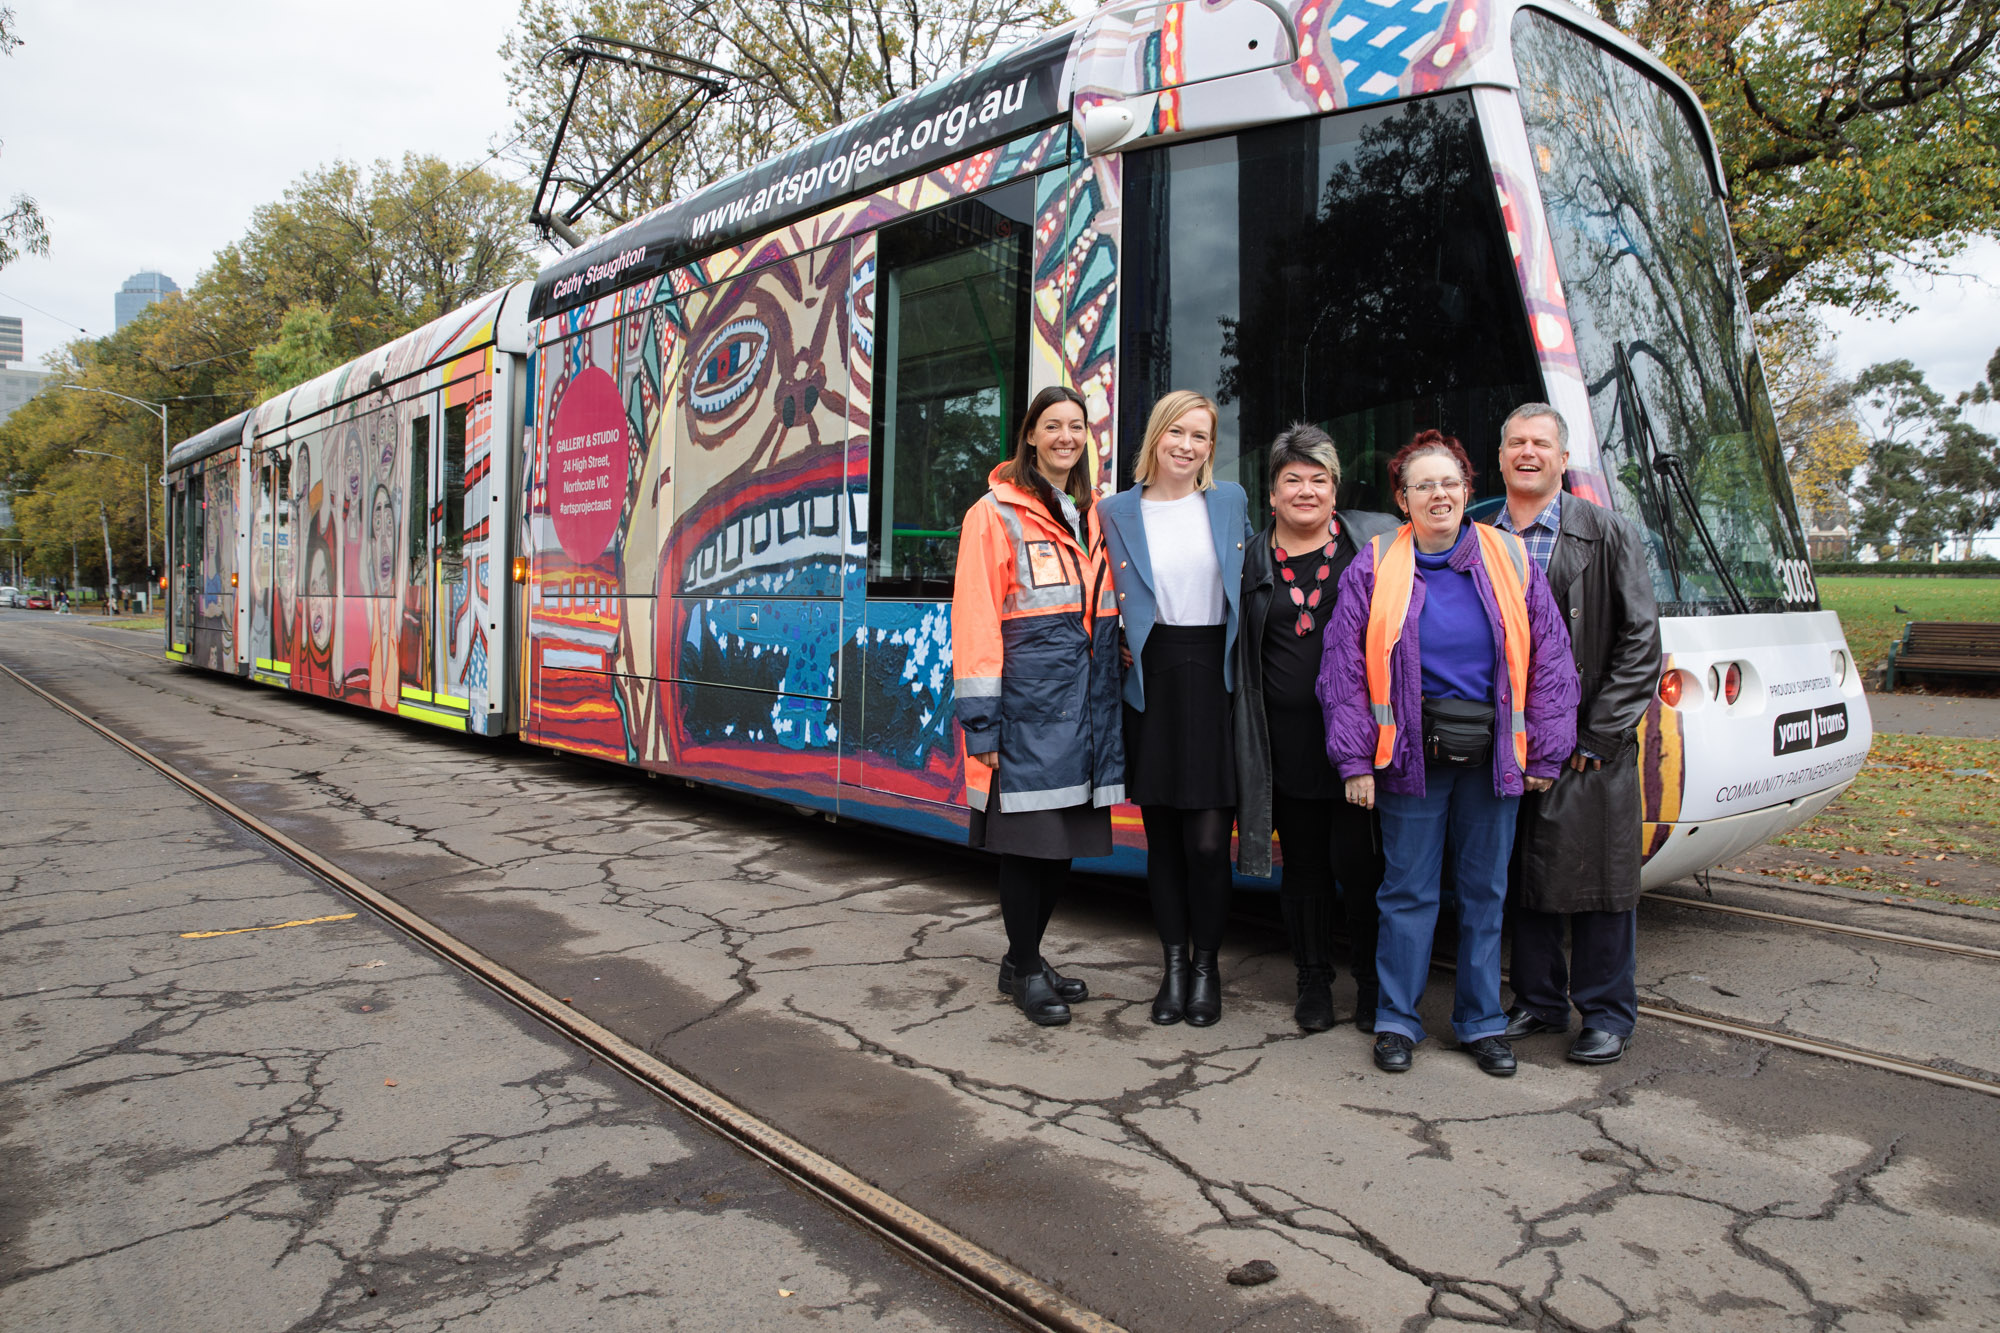 Yarra tram featuring artwork by Arts Project Australia artists Cathy Staughton and Warren O'Brien.